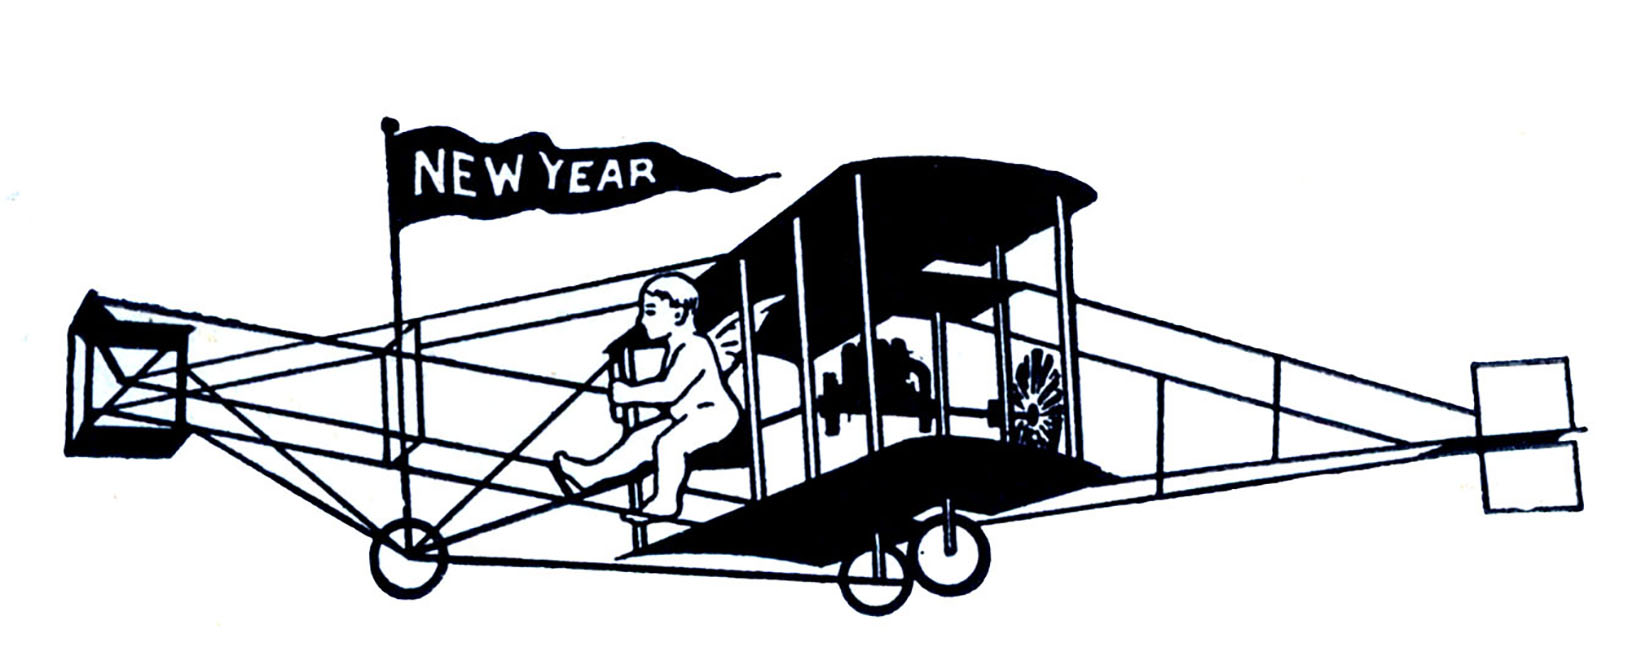 10 Black And White New Year Clipart The Graphics Fairy